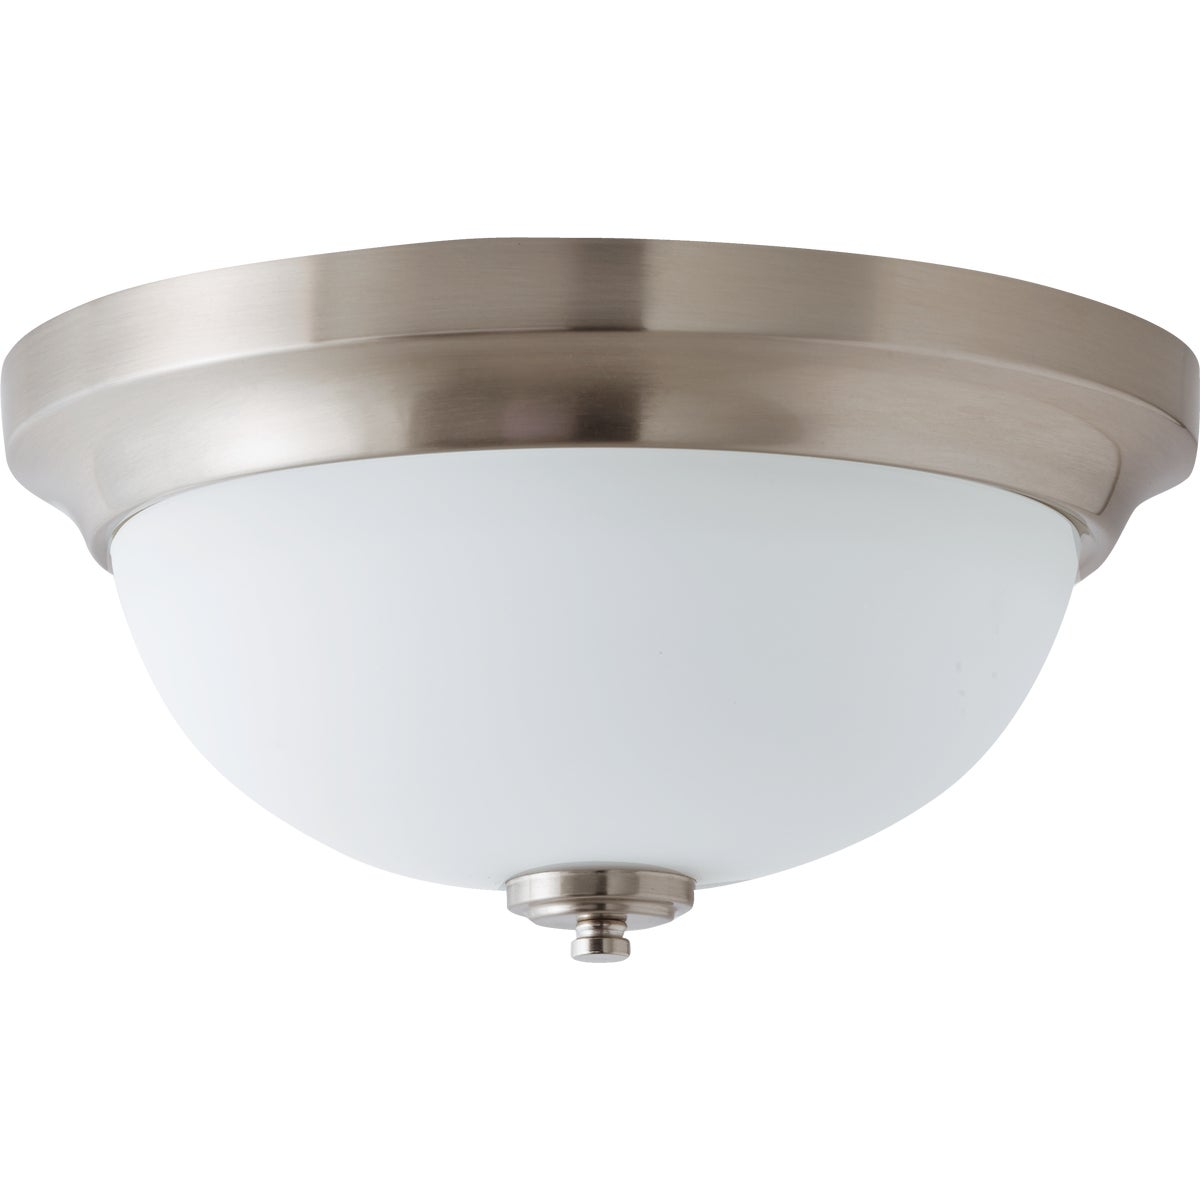 2BULB BN CEILING FIXTURE - IFM256A13BN by Canarm Gs